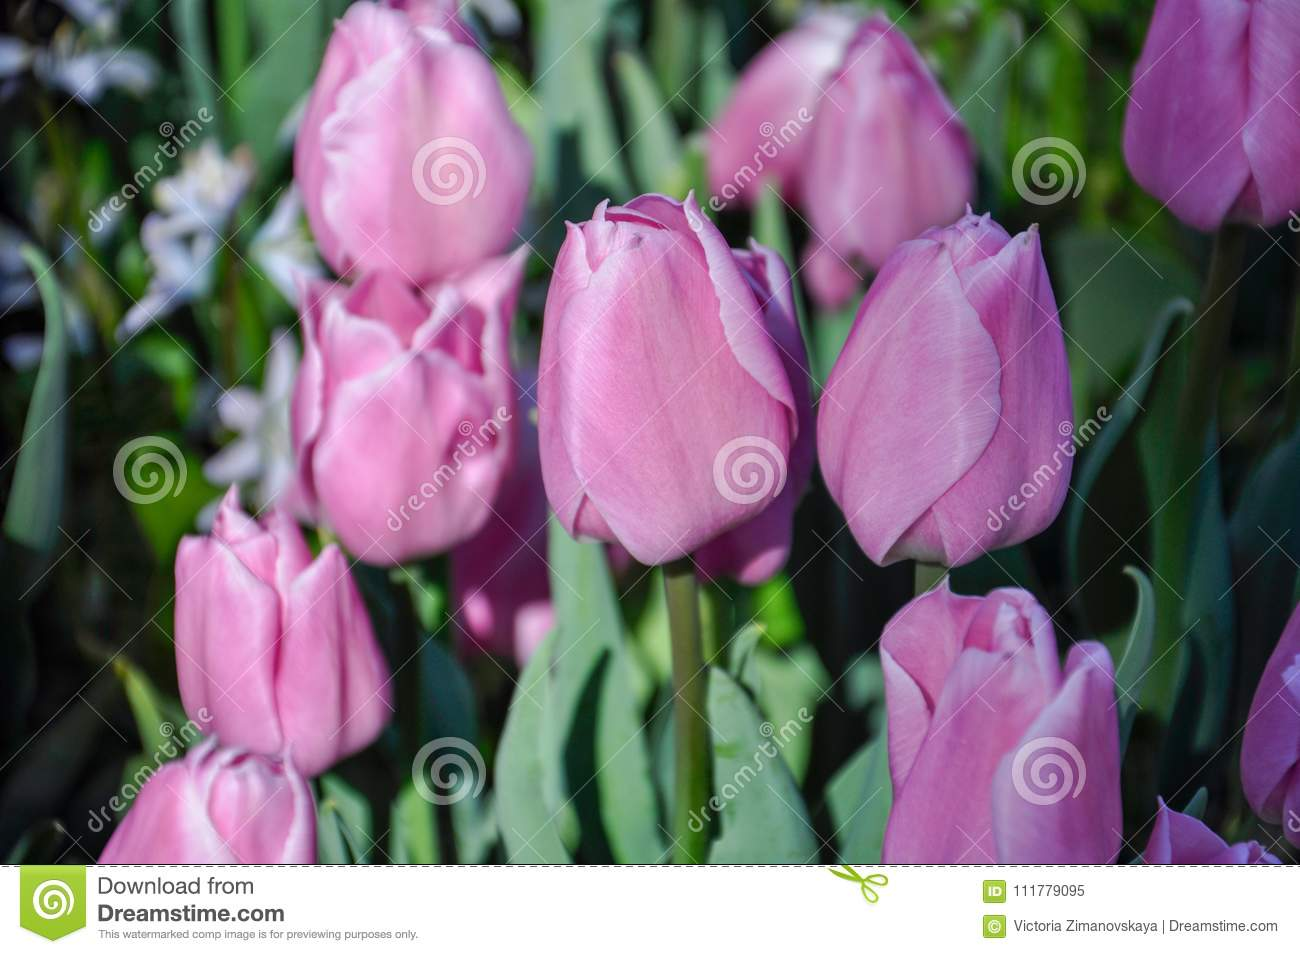 Tulip blossom. Close-up pink flowers field outdoors